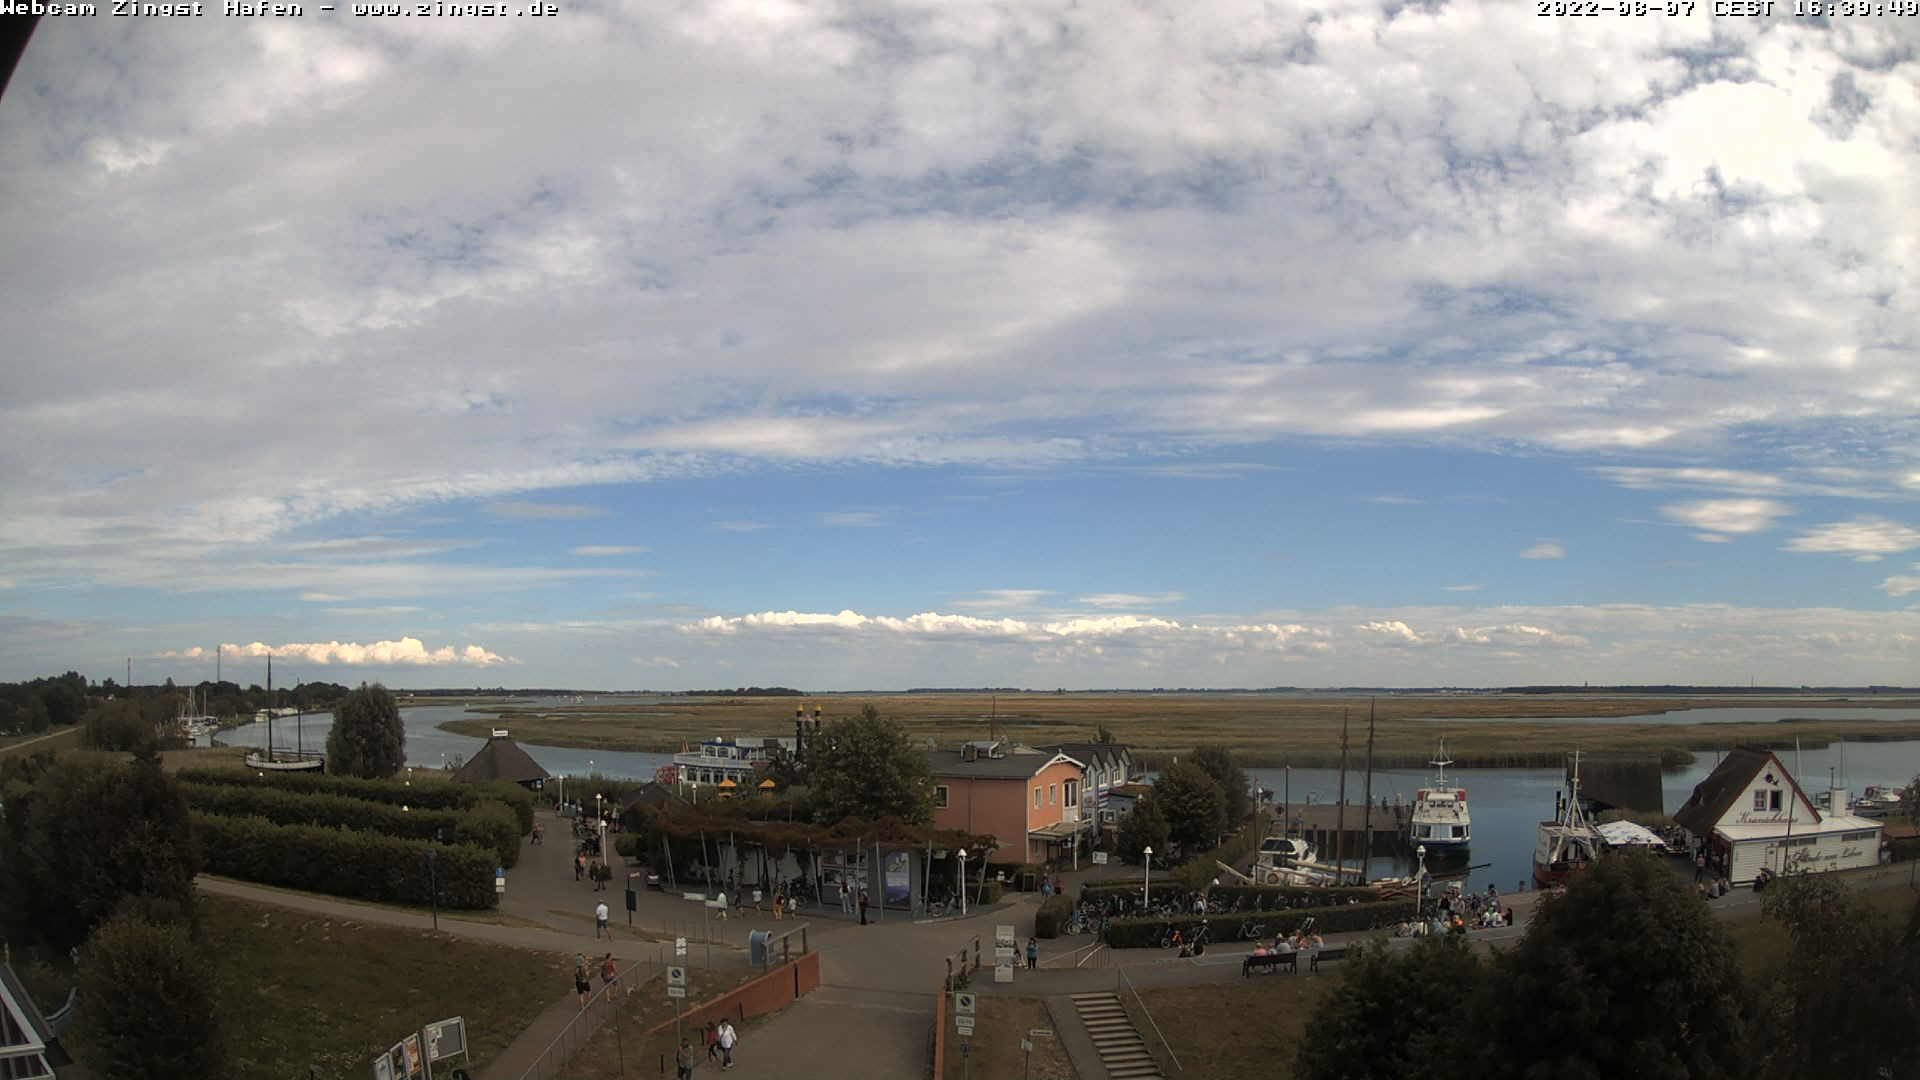 Hafen Webcam Zingst